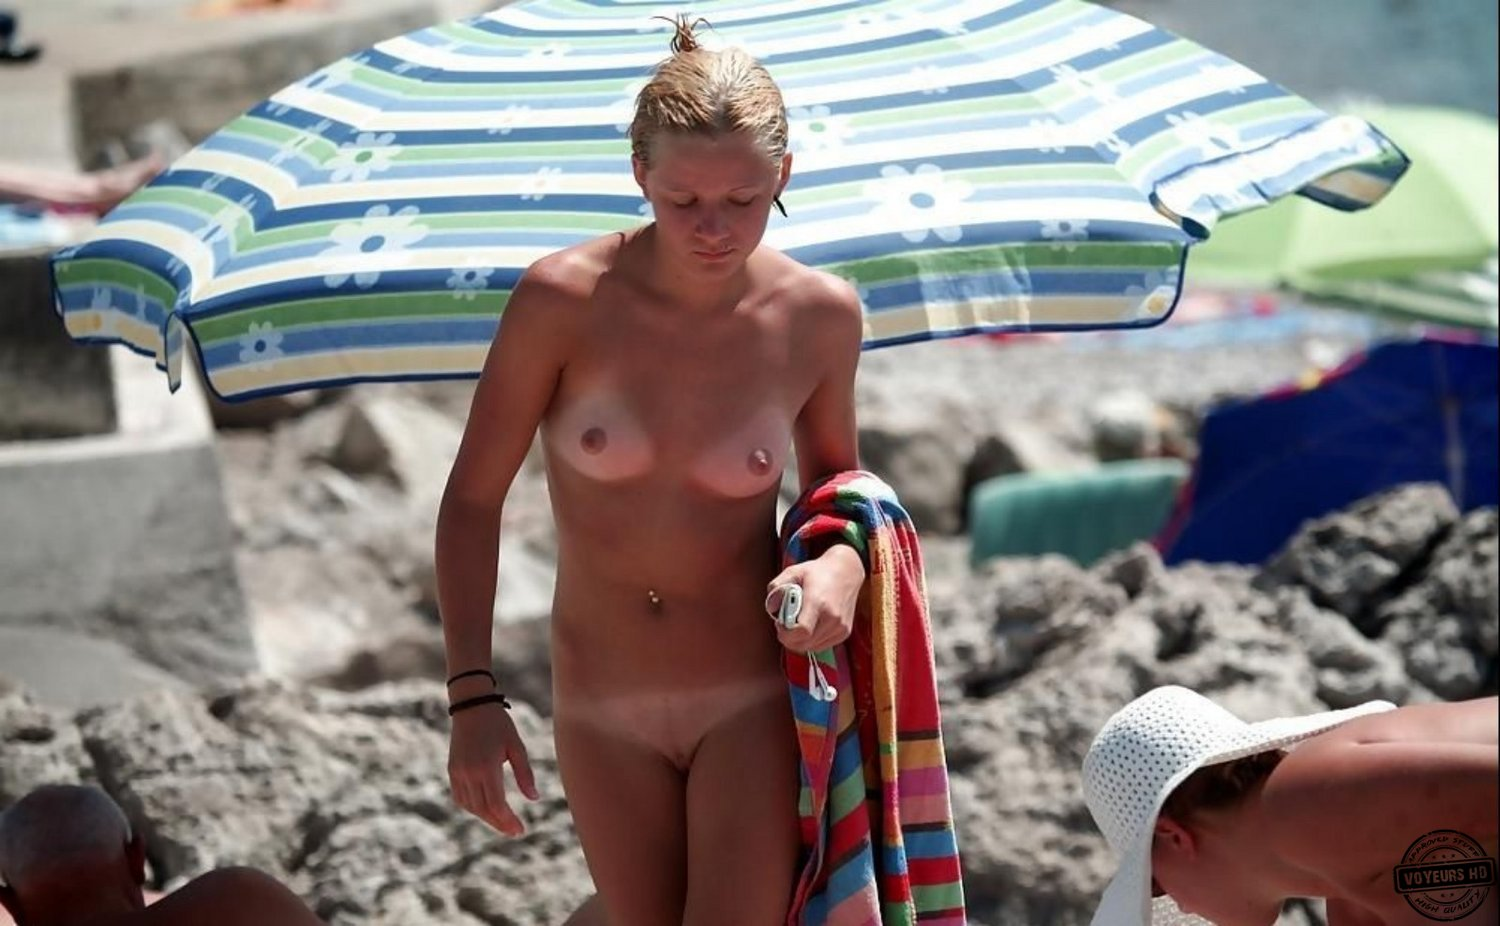 Mom And Daughter Nude On Beach - Voyeur Videos-1486